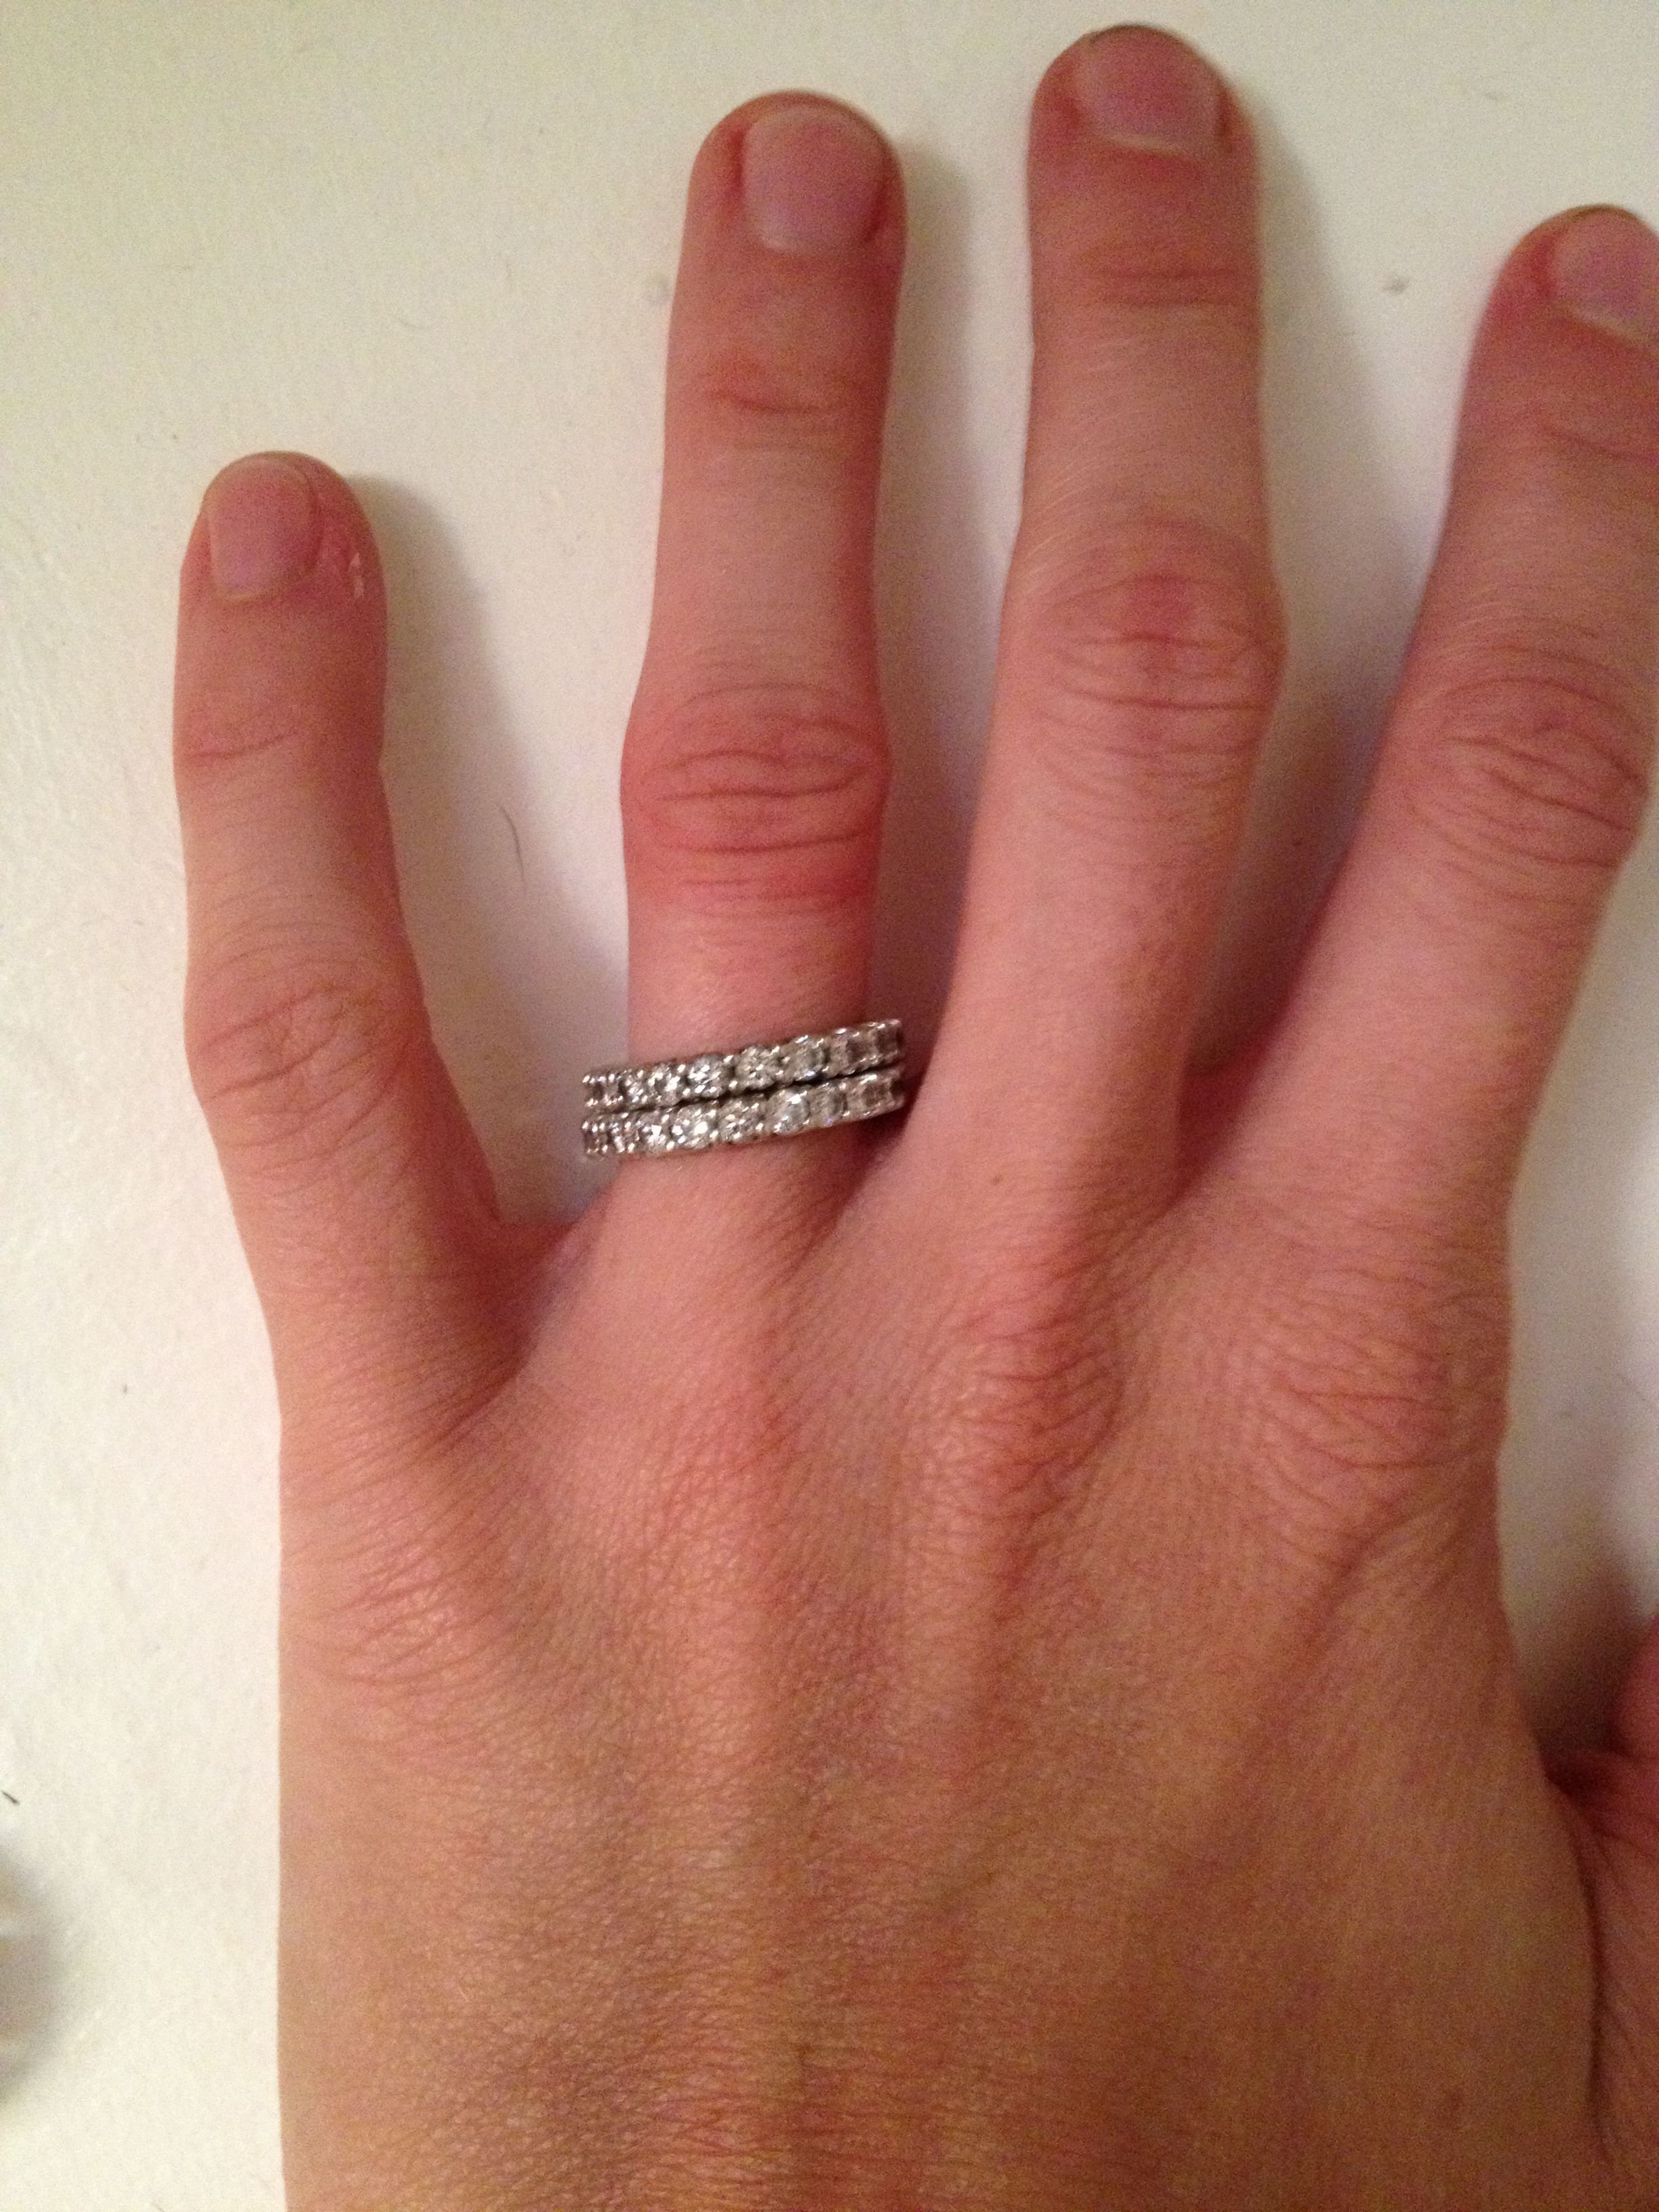 Gallery images and information: Five Year Engagement Ring Five Year Engagement Ring